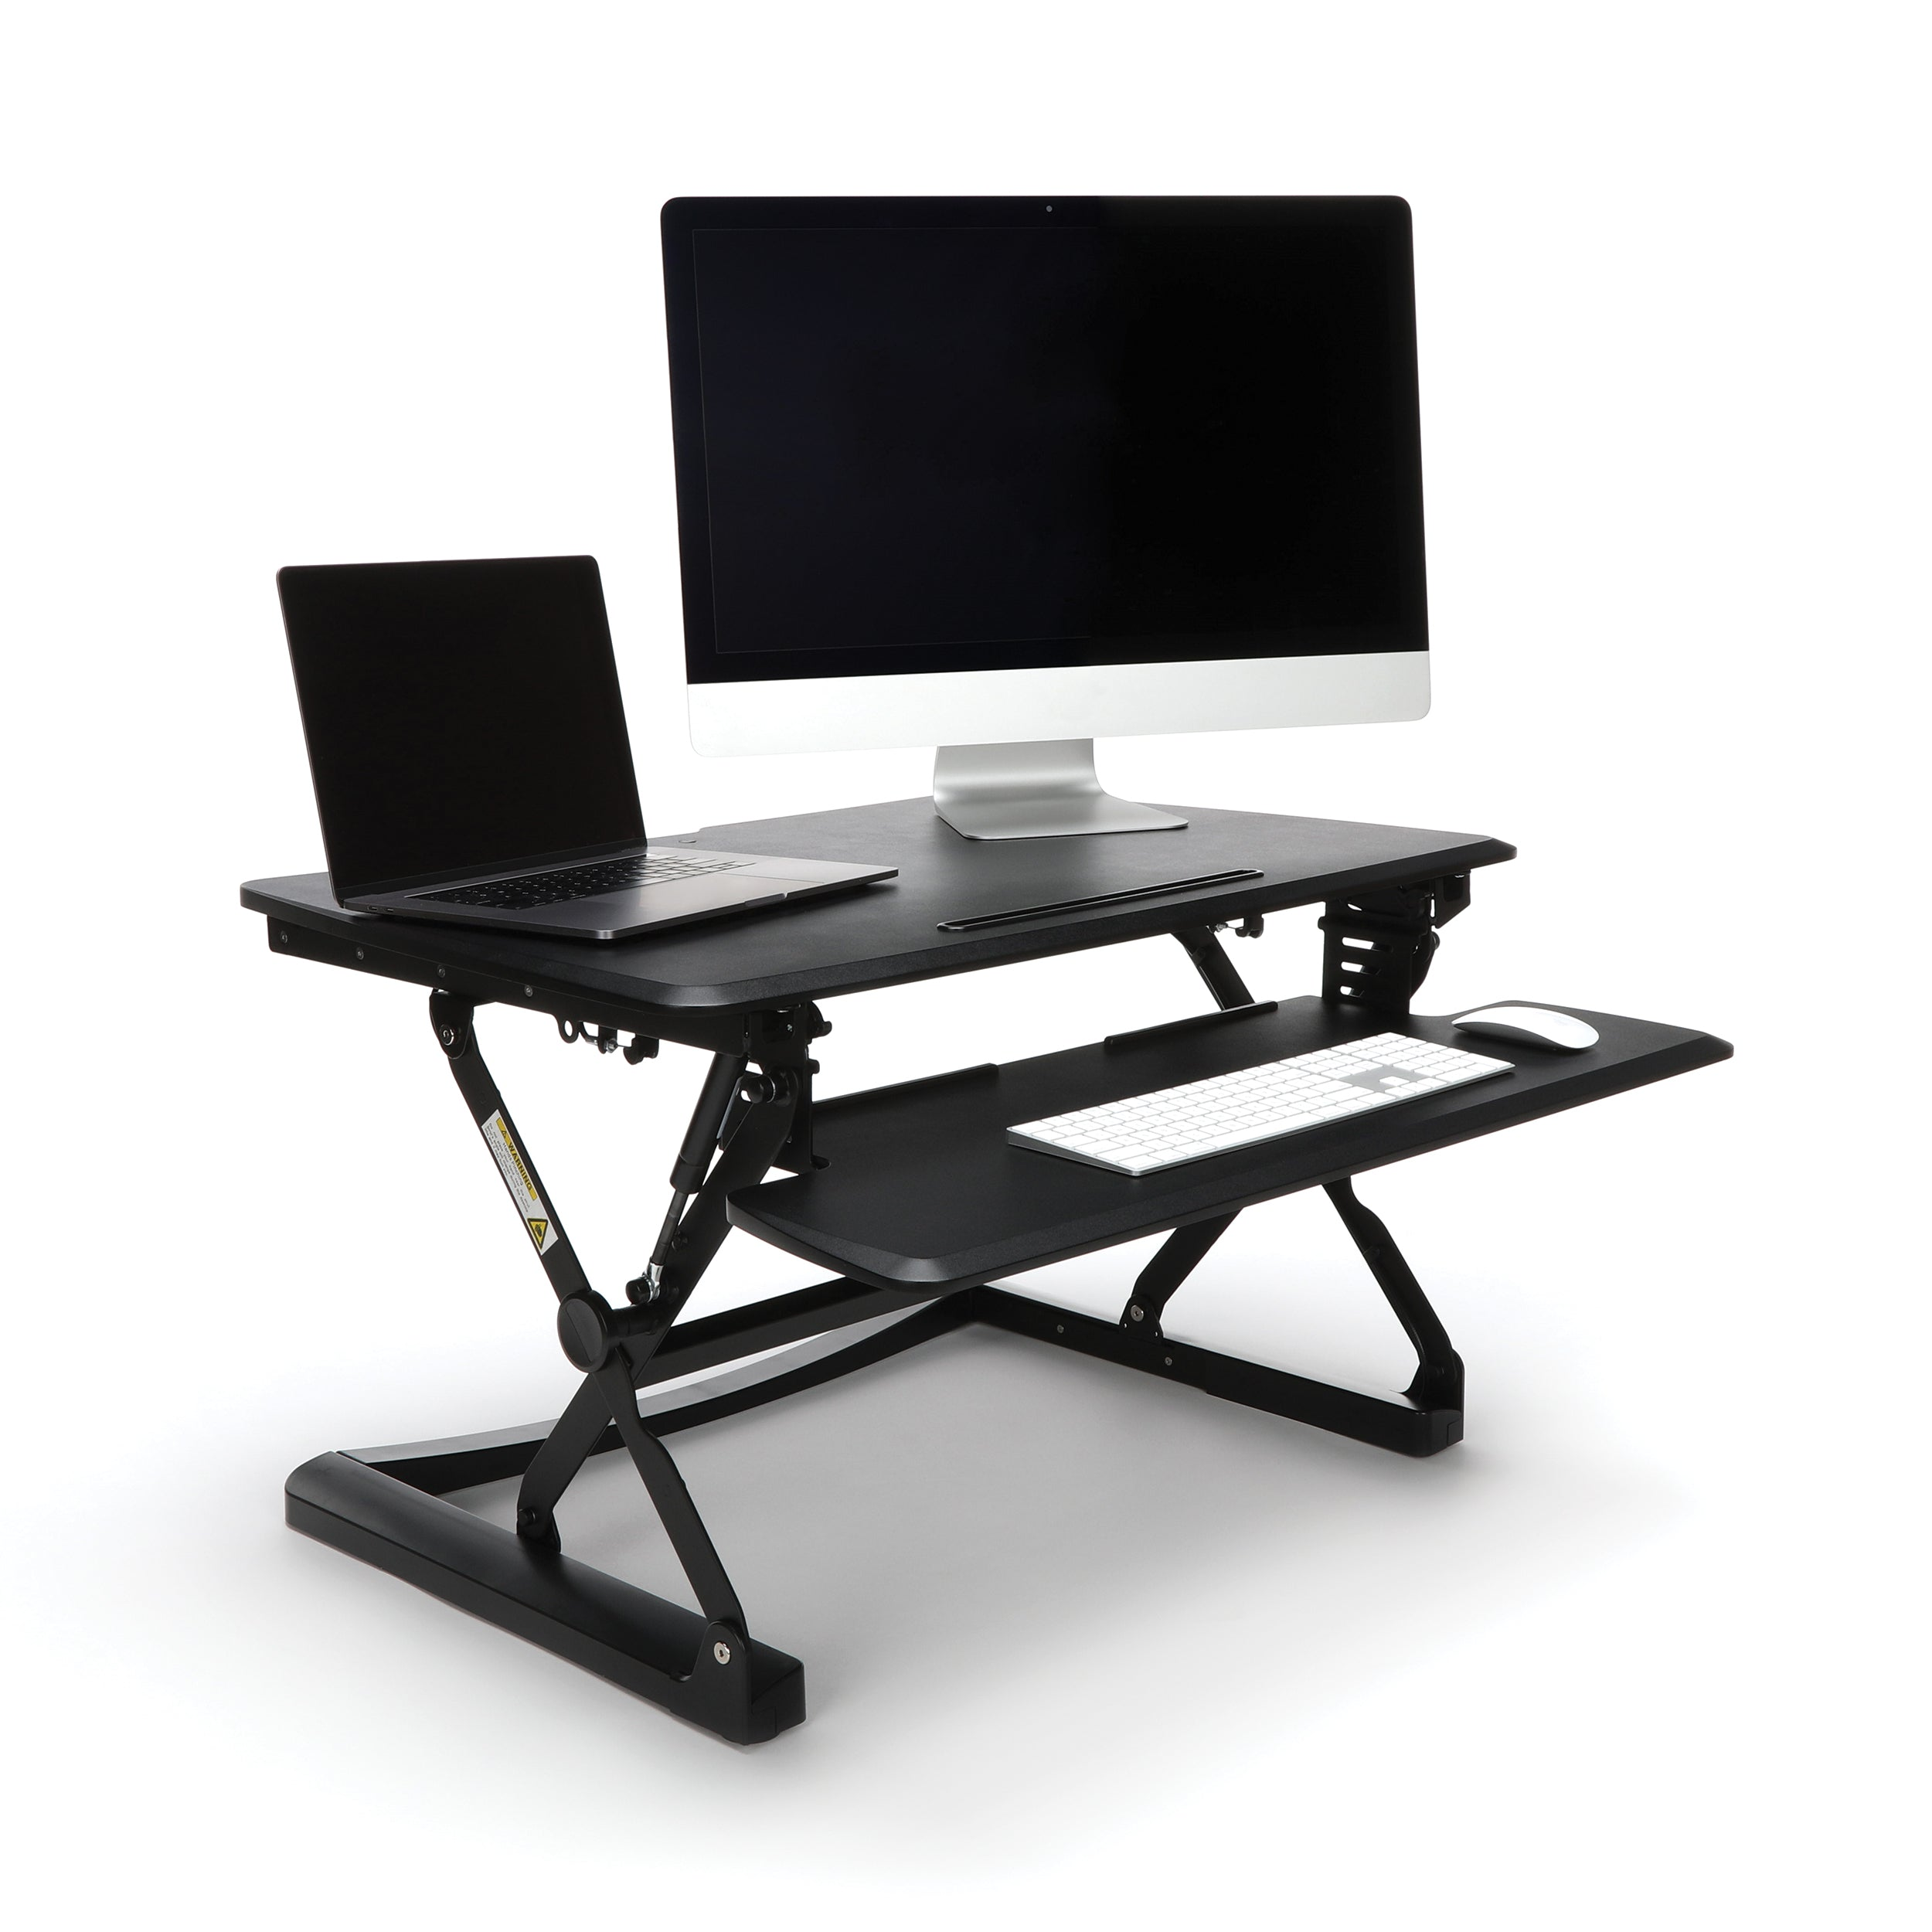 OFM Model 5100 Height Adjustable Sit to Stand Desktop Riser